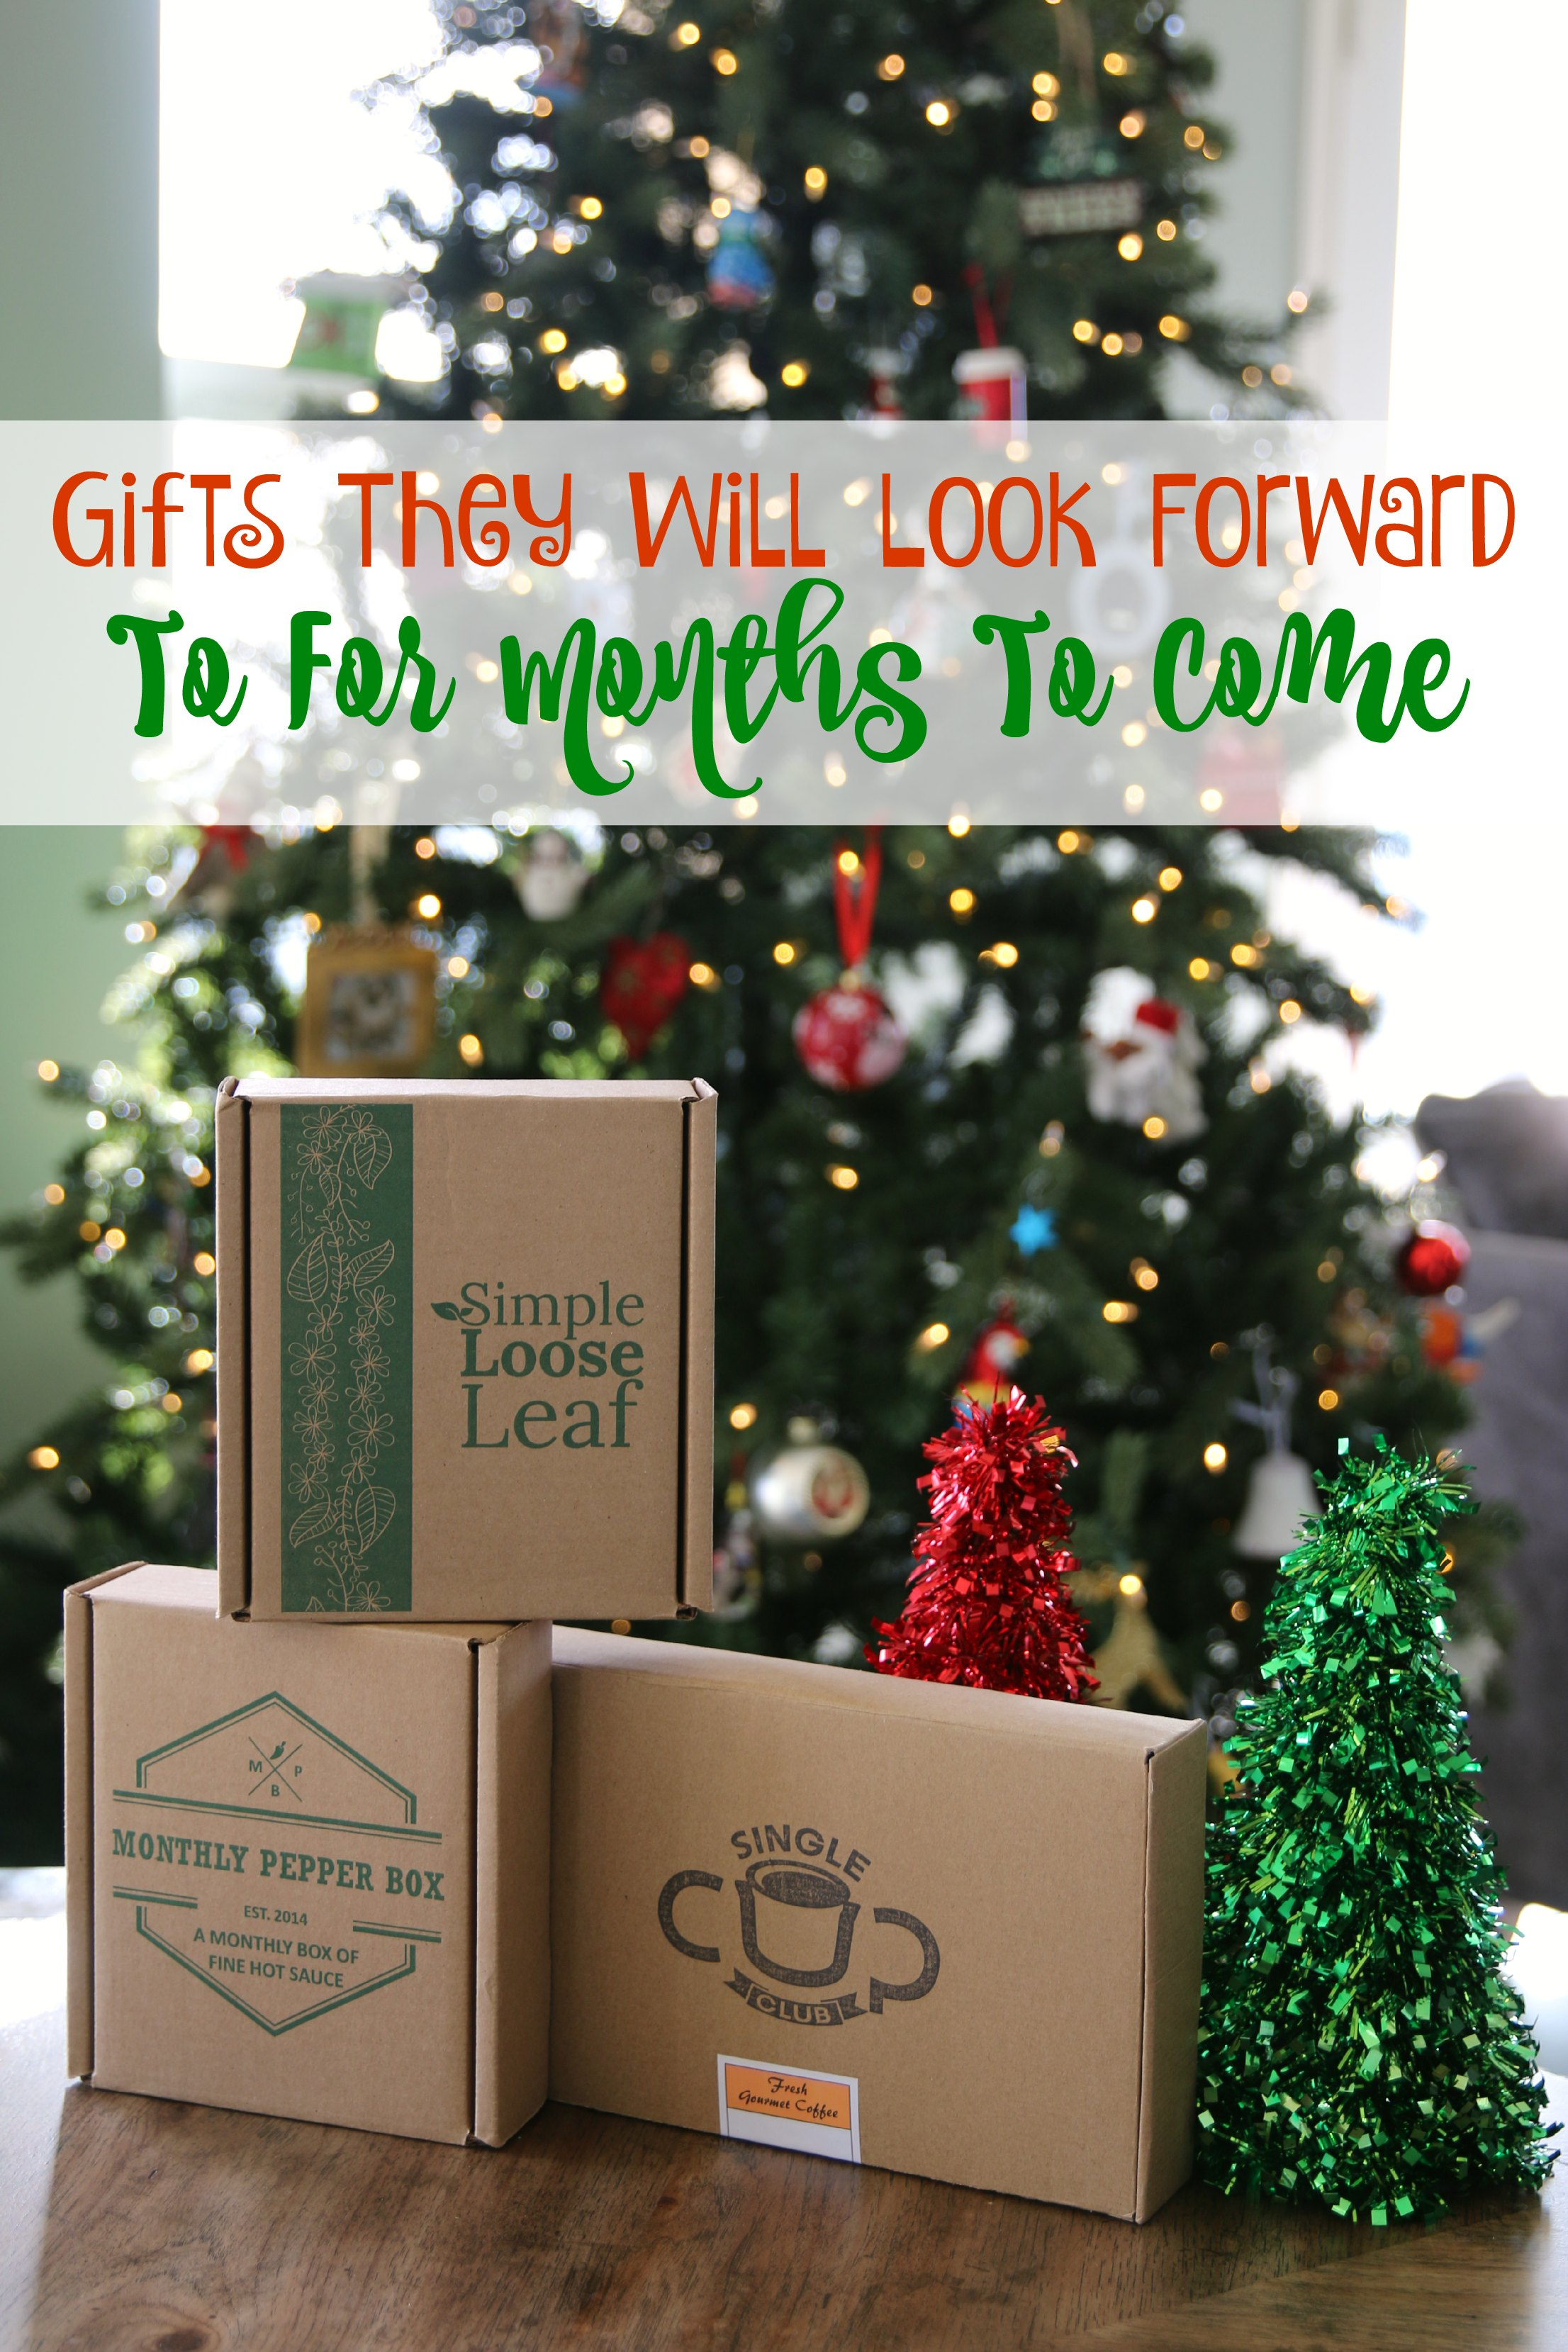 Gifts They Will Look Forward To For Months To Come